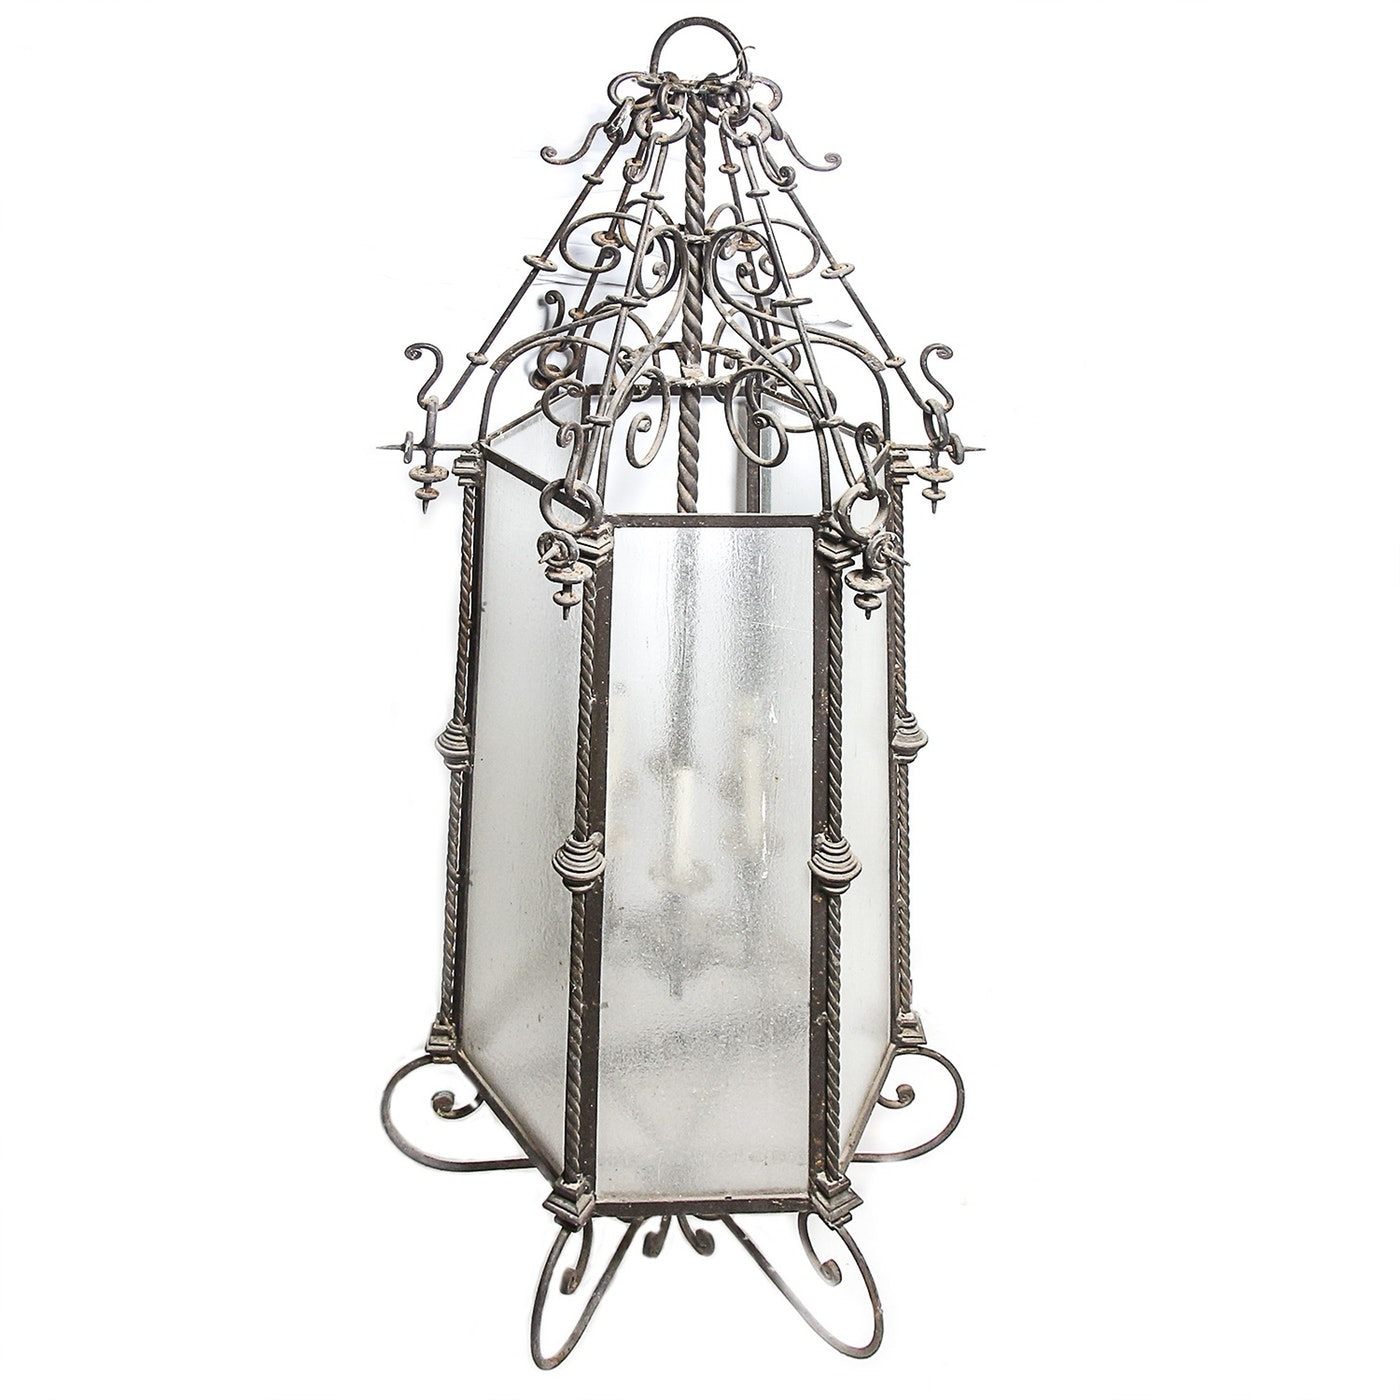 Wrought Iron Chandelier with Hexagonal Glass Shade